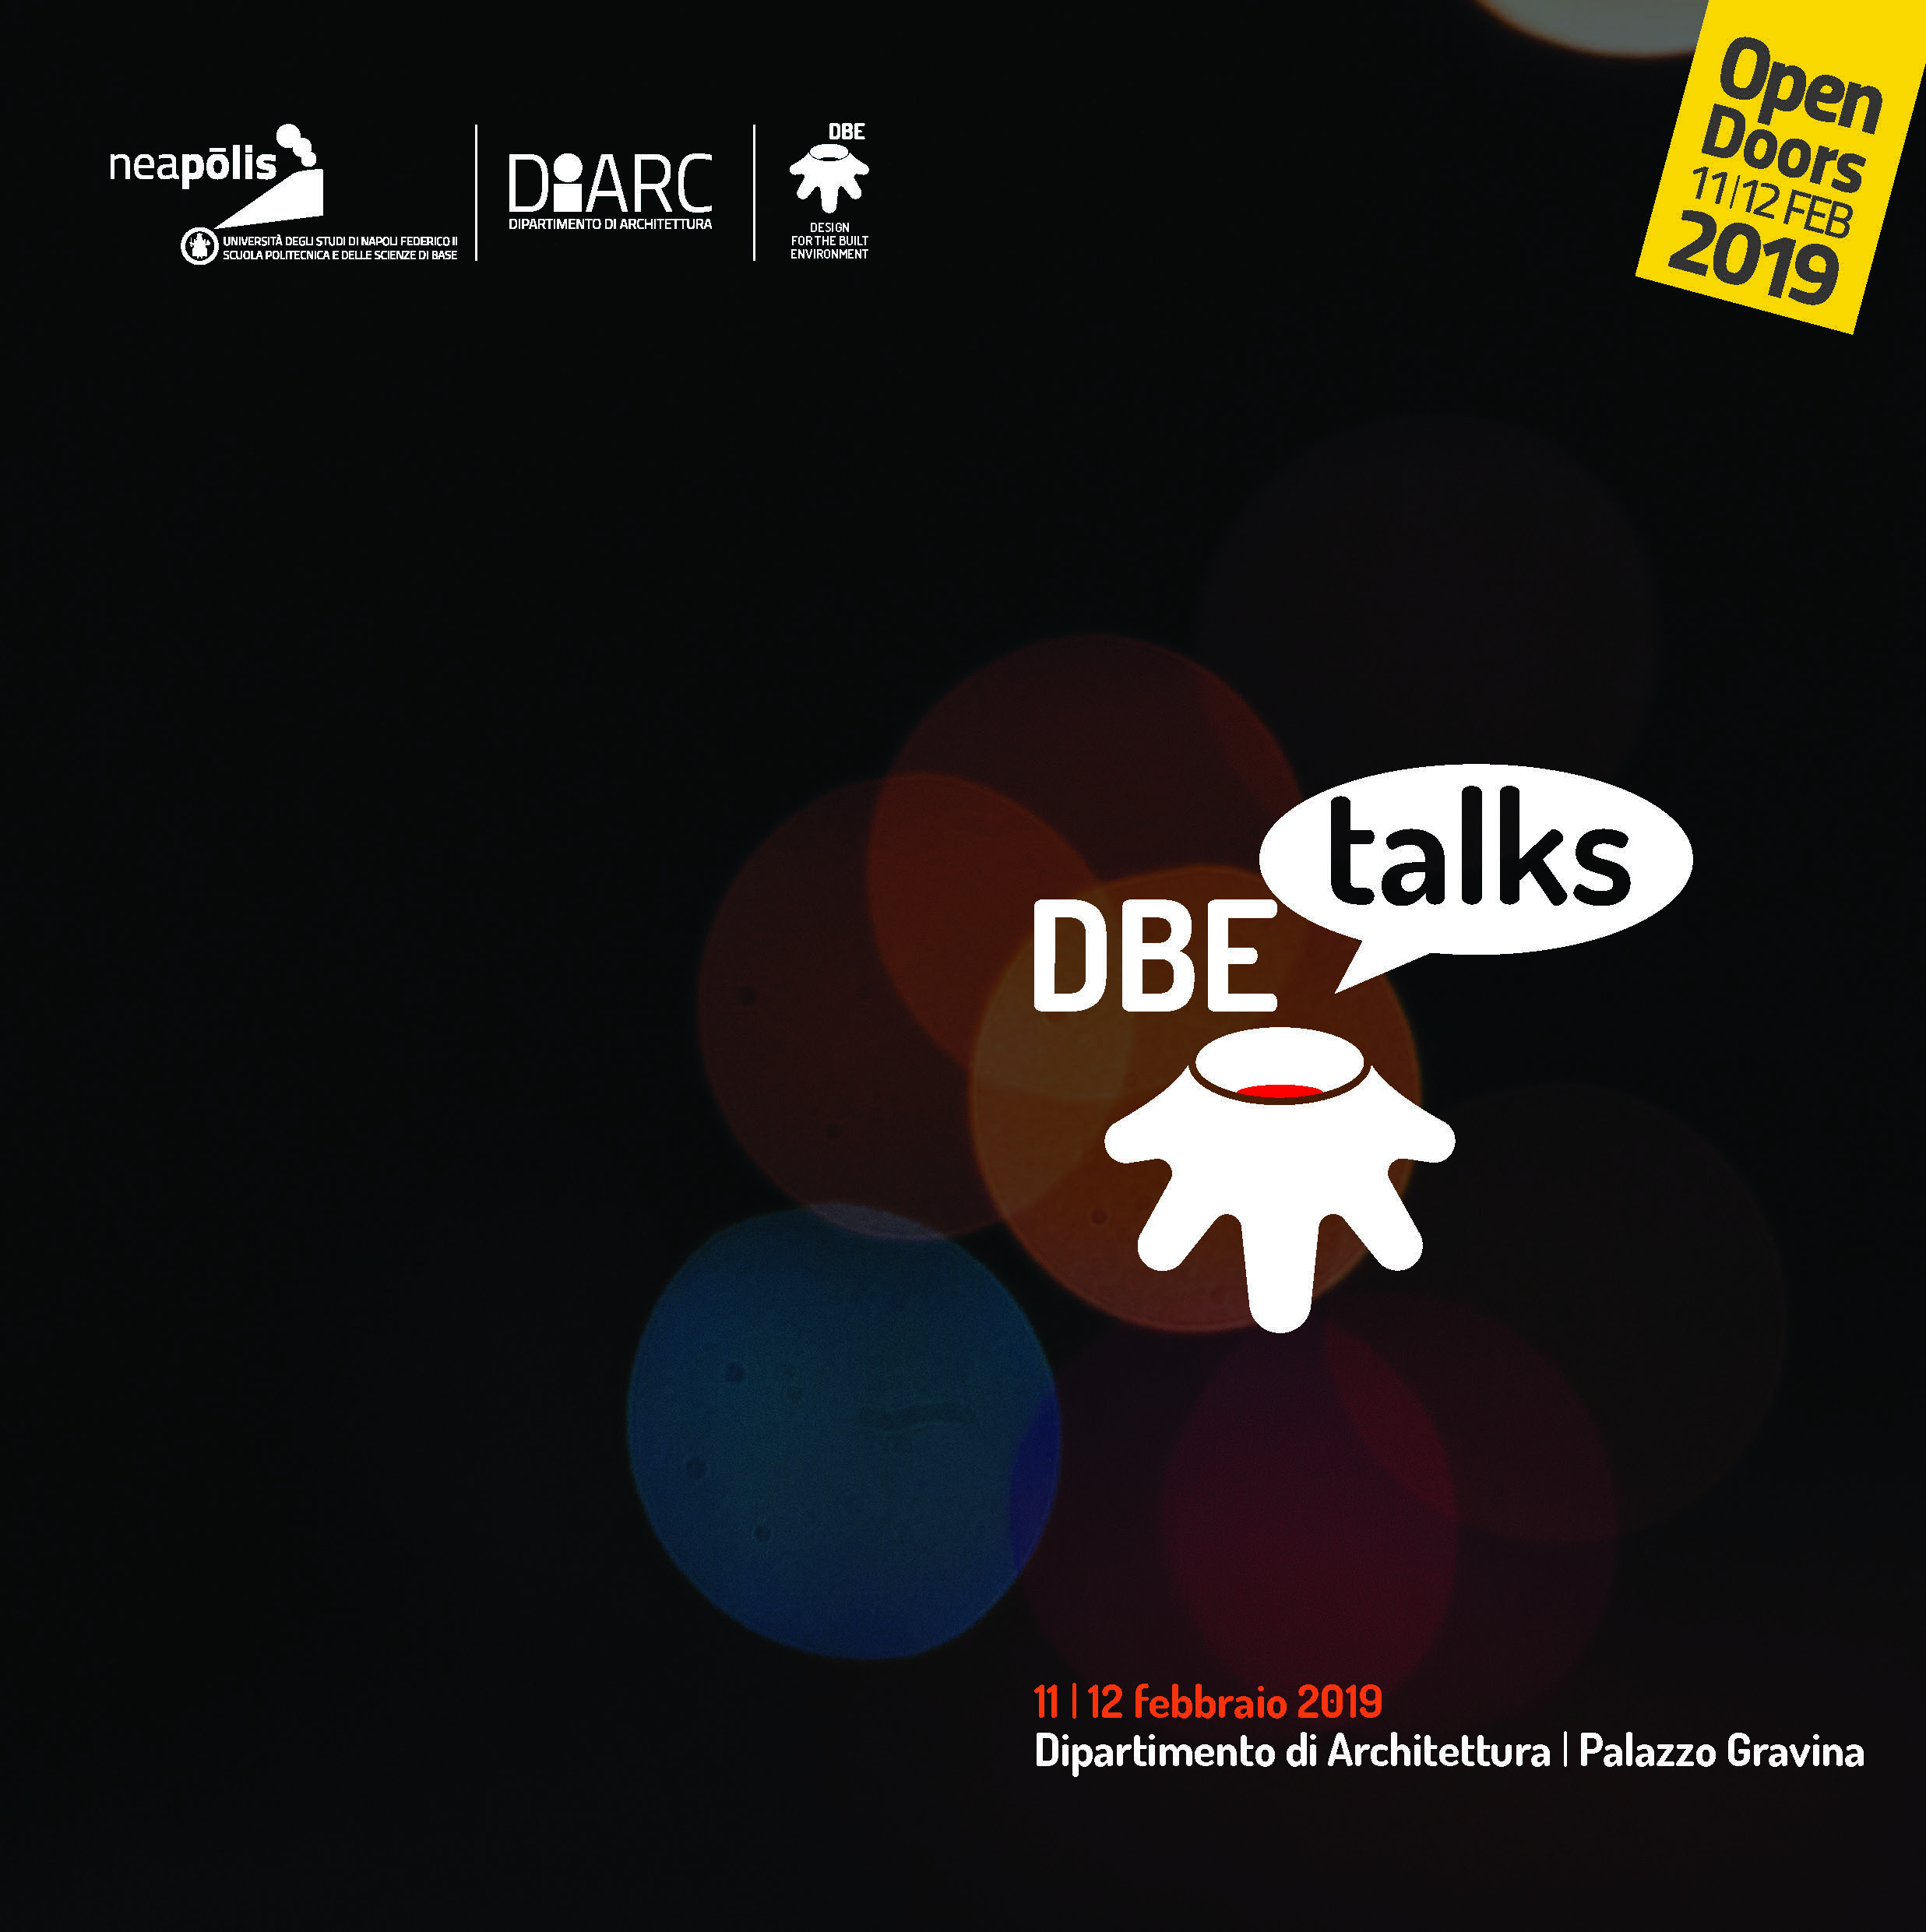 DBE TALKS PROGRAM DEFLOW Pagina 01